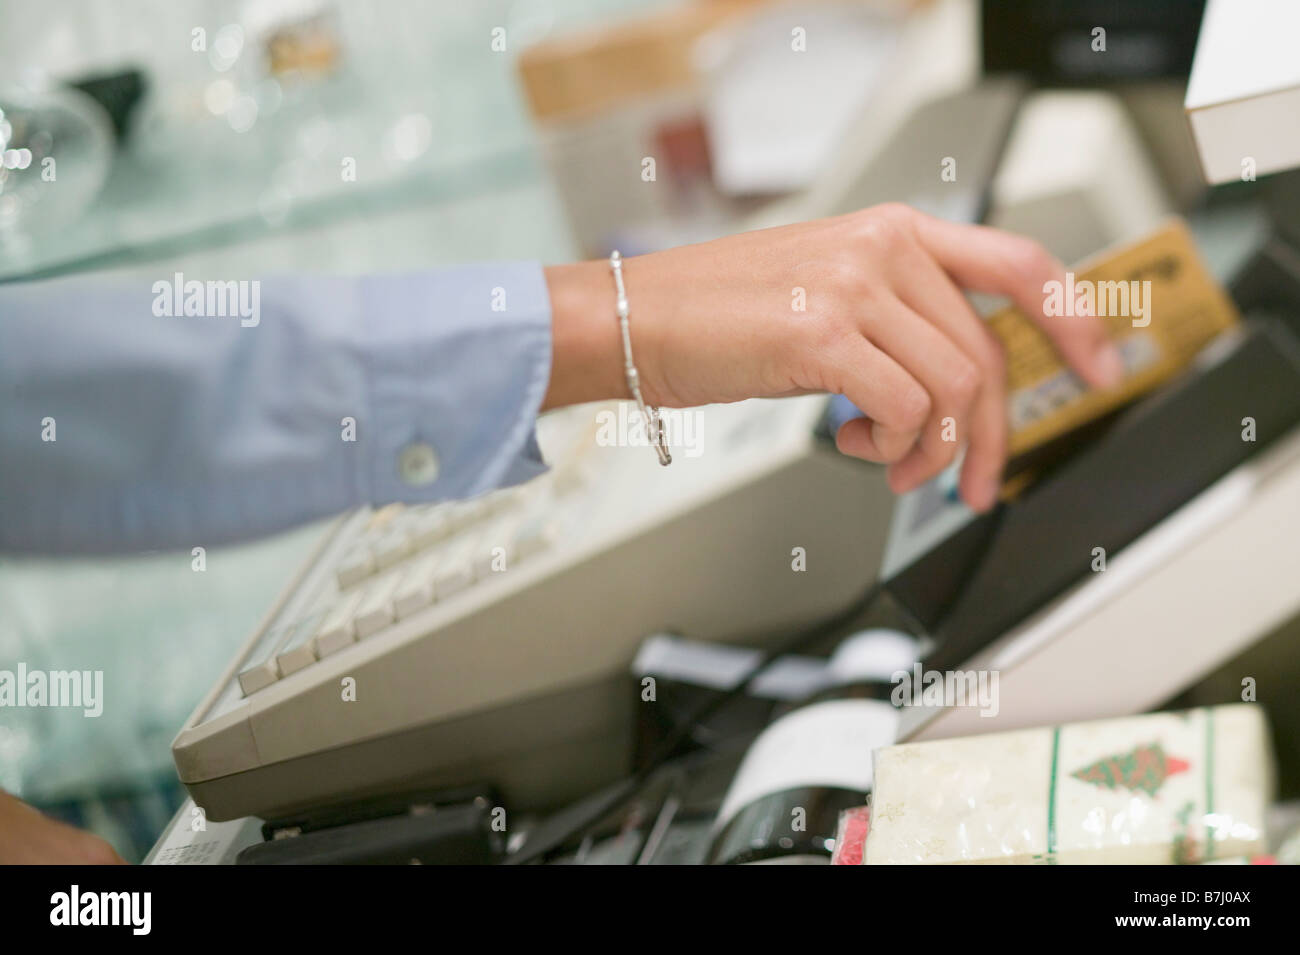 Swiping credit/debit card, Vancouver, B.C. Stock Photo